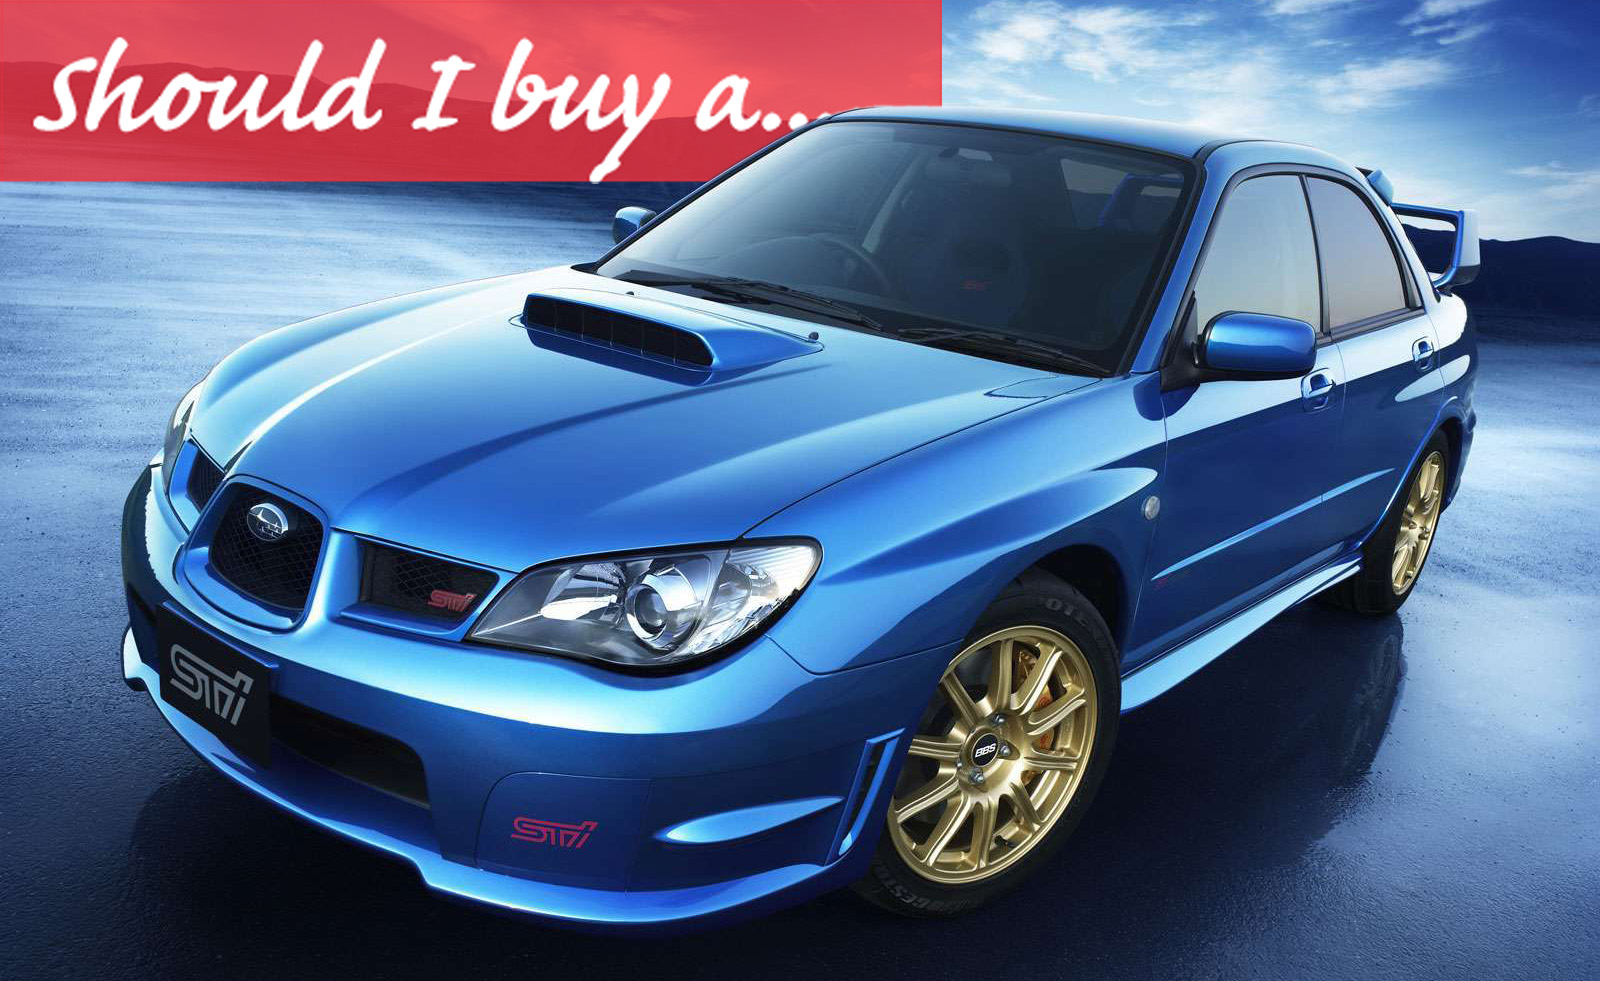 Subaru Wrx Sti furthermore Tn further Img in addition Img moreover S L. on 2002 subaru wrx wagon